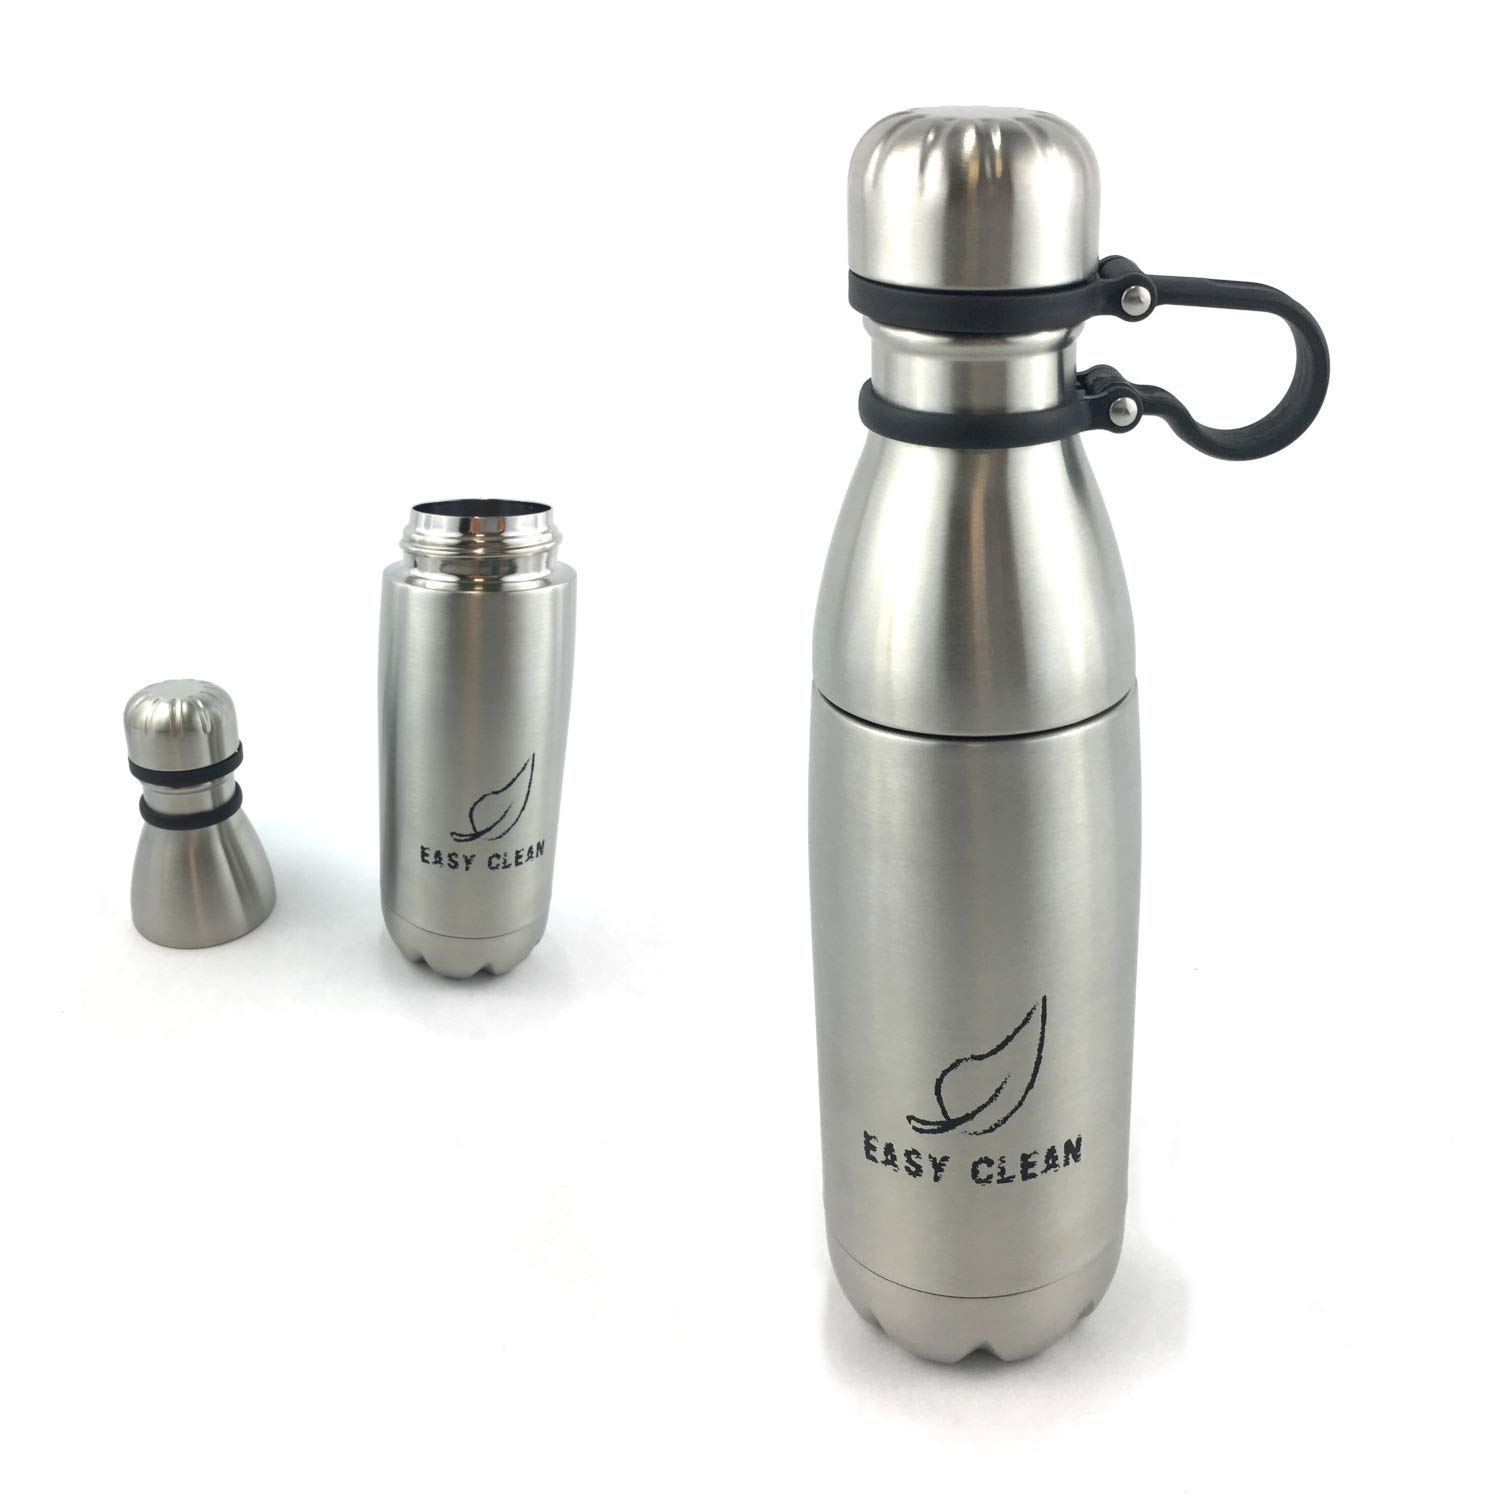 Easy Clean Water Bottle - Separates for Easy Cleaning | Dishwasher Safe | BPA Free & Eco Friendly | Insulated Stainless Steel | 17oz